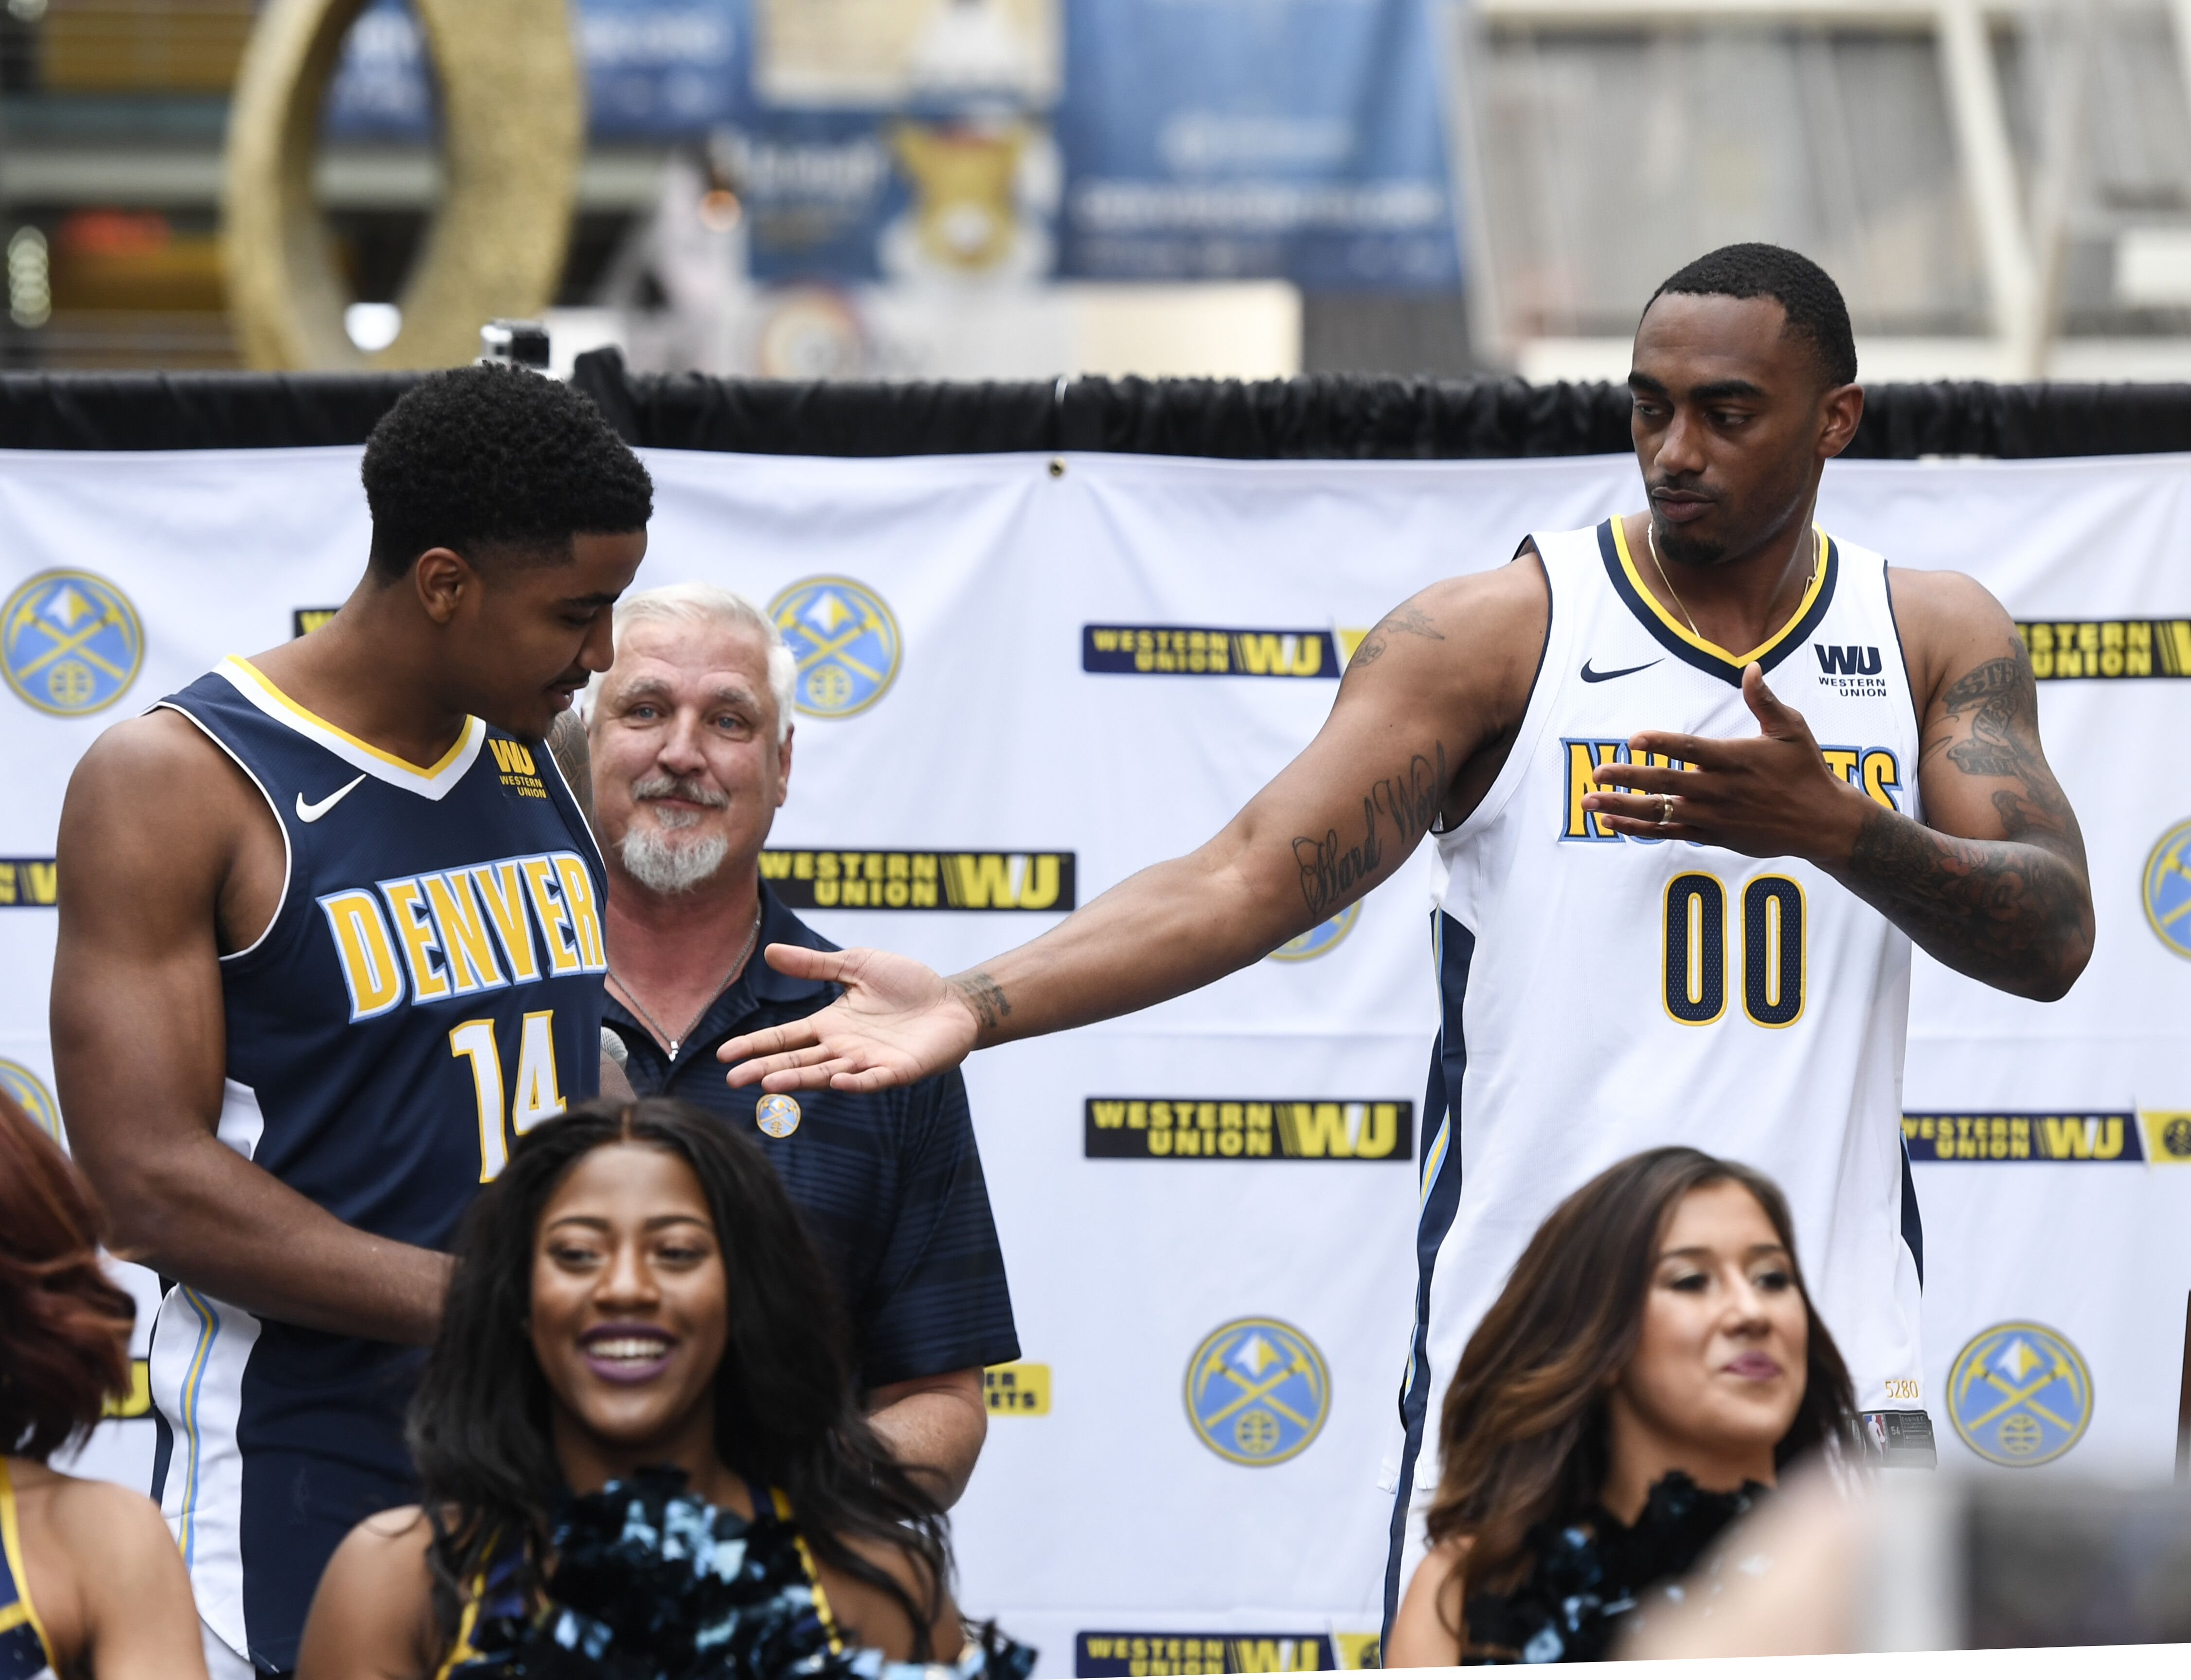 DENVER, CO - AUGUST 8: Denver Nuggets Gary Harris (14) and Darrell Arthur (00) unveil their new team jersey on August 8, 2017 during a pep rally in Denver, Colorado the DCPA. (Photo by John Leyba/The Denver Post via Getty Images)